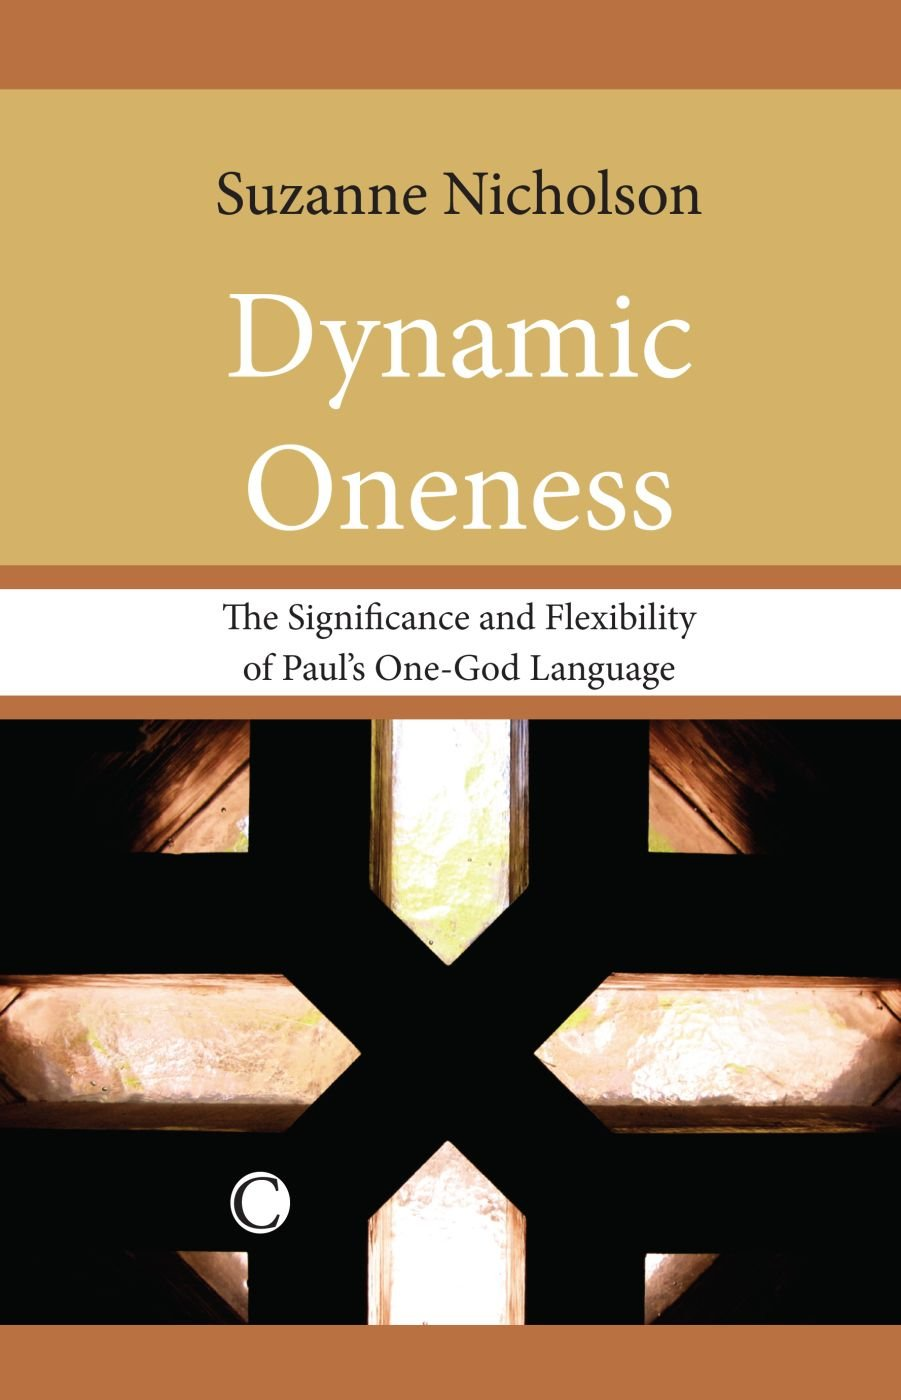 Dynamic Oneness: The Significance and Flexibility of Paul's One-God Language by James Clarke & Co